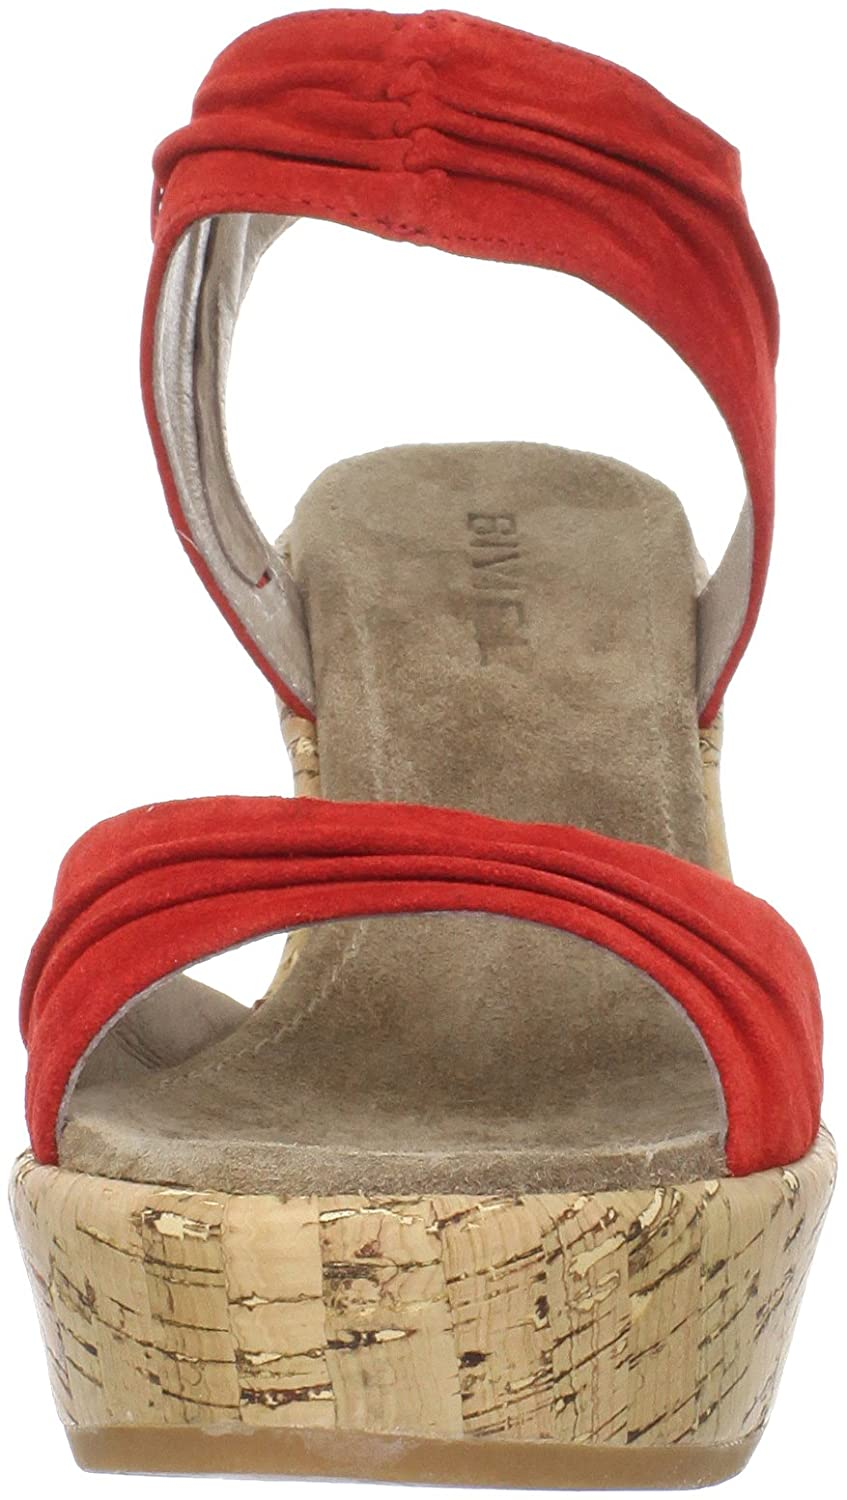 Biviel Women's BV3653 Wedge Sandal B005NYRFP6 37 M EU / 6.5 B(M) US|Silky Red